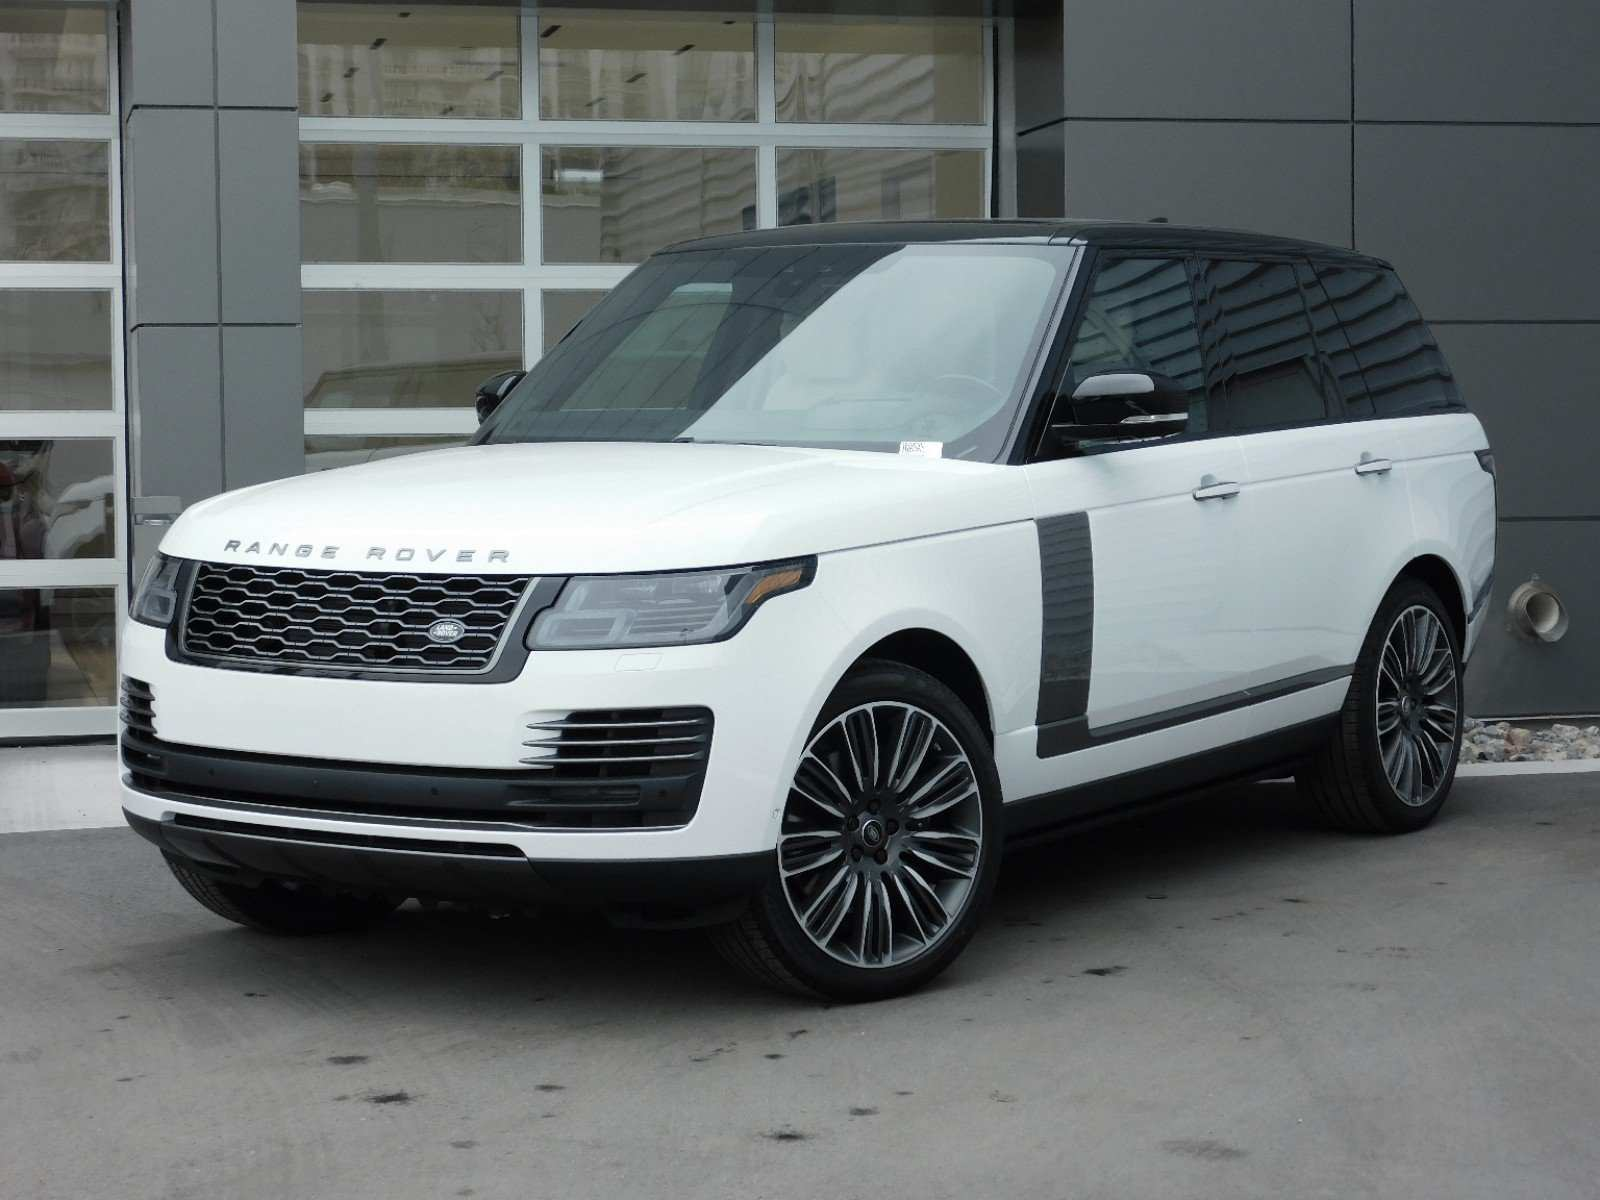 35 All New 2019 Land Rover Autobiography Concept by 2019 Land Rover Autobiography